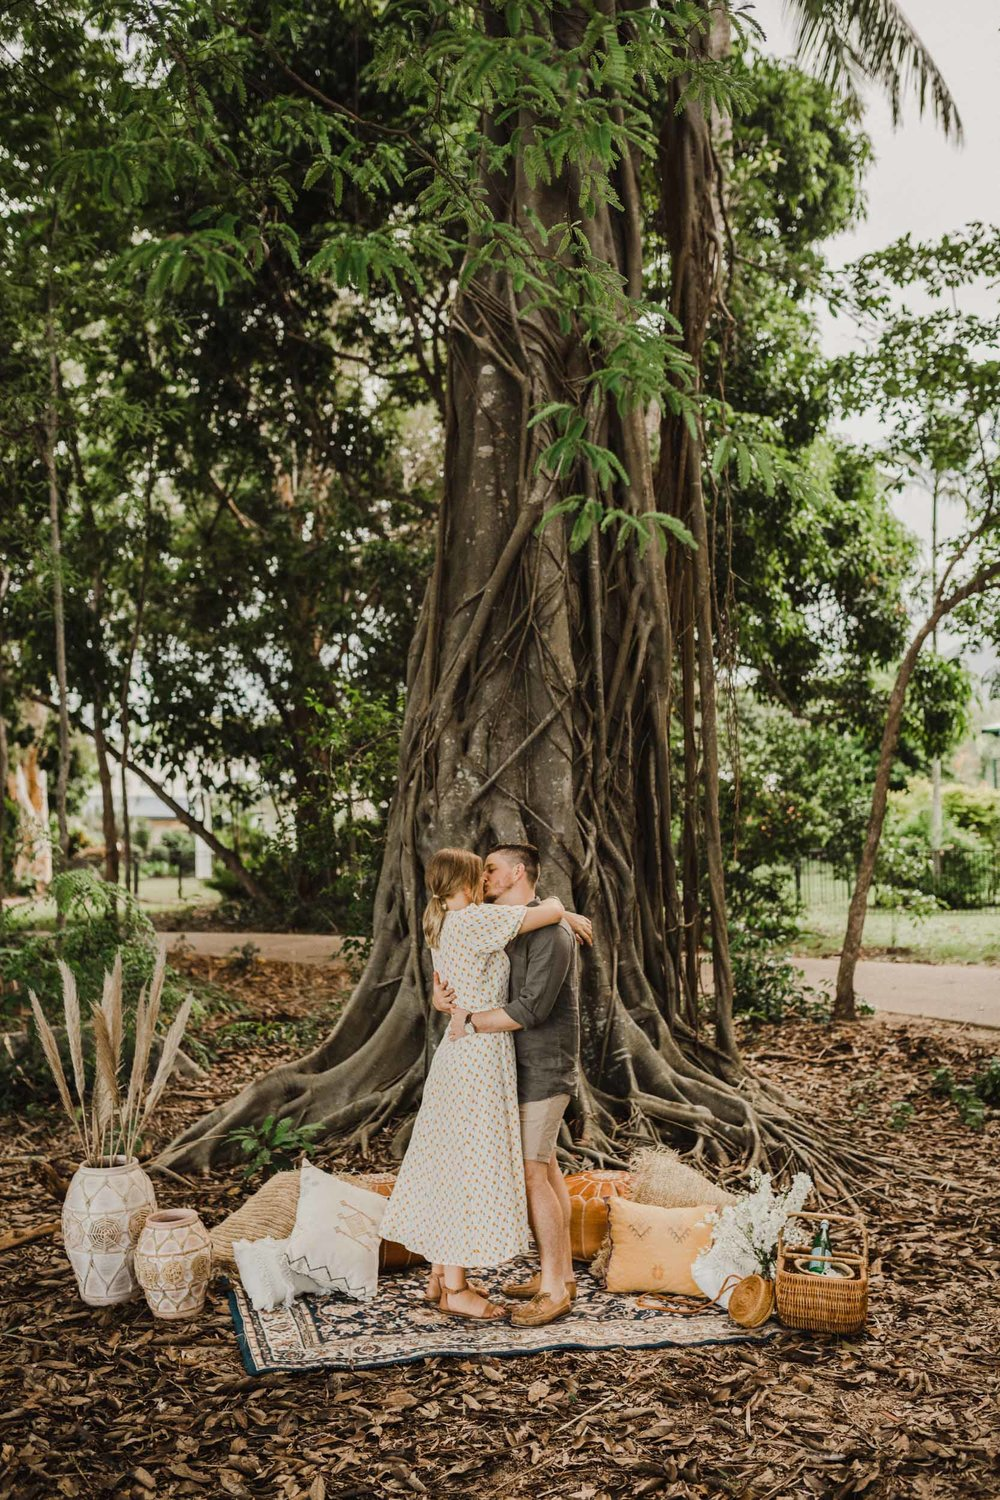 The Raw Photographer - Cairns Wedding Photographer - Beach Engagement Shoot - Candid Picnic-21.jpg